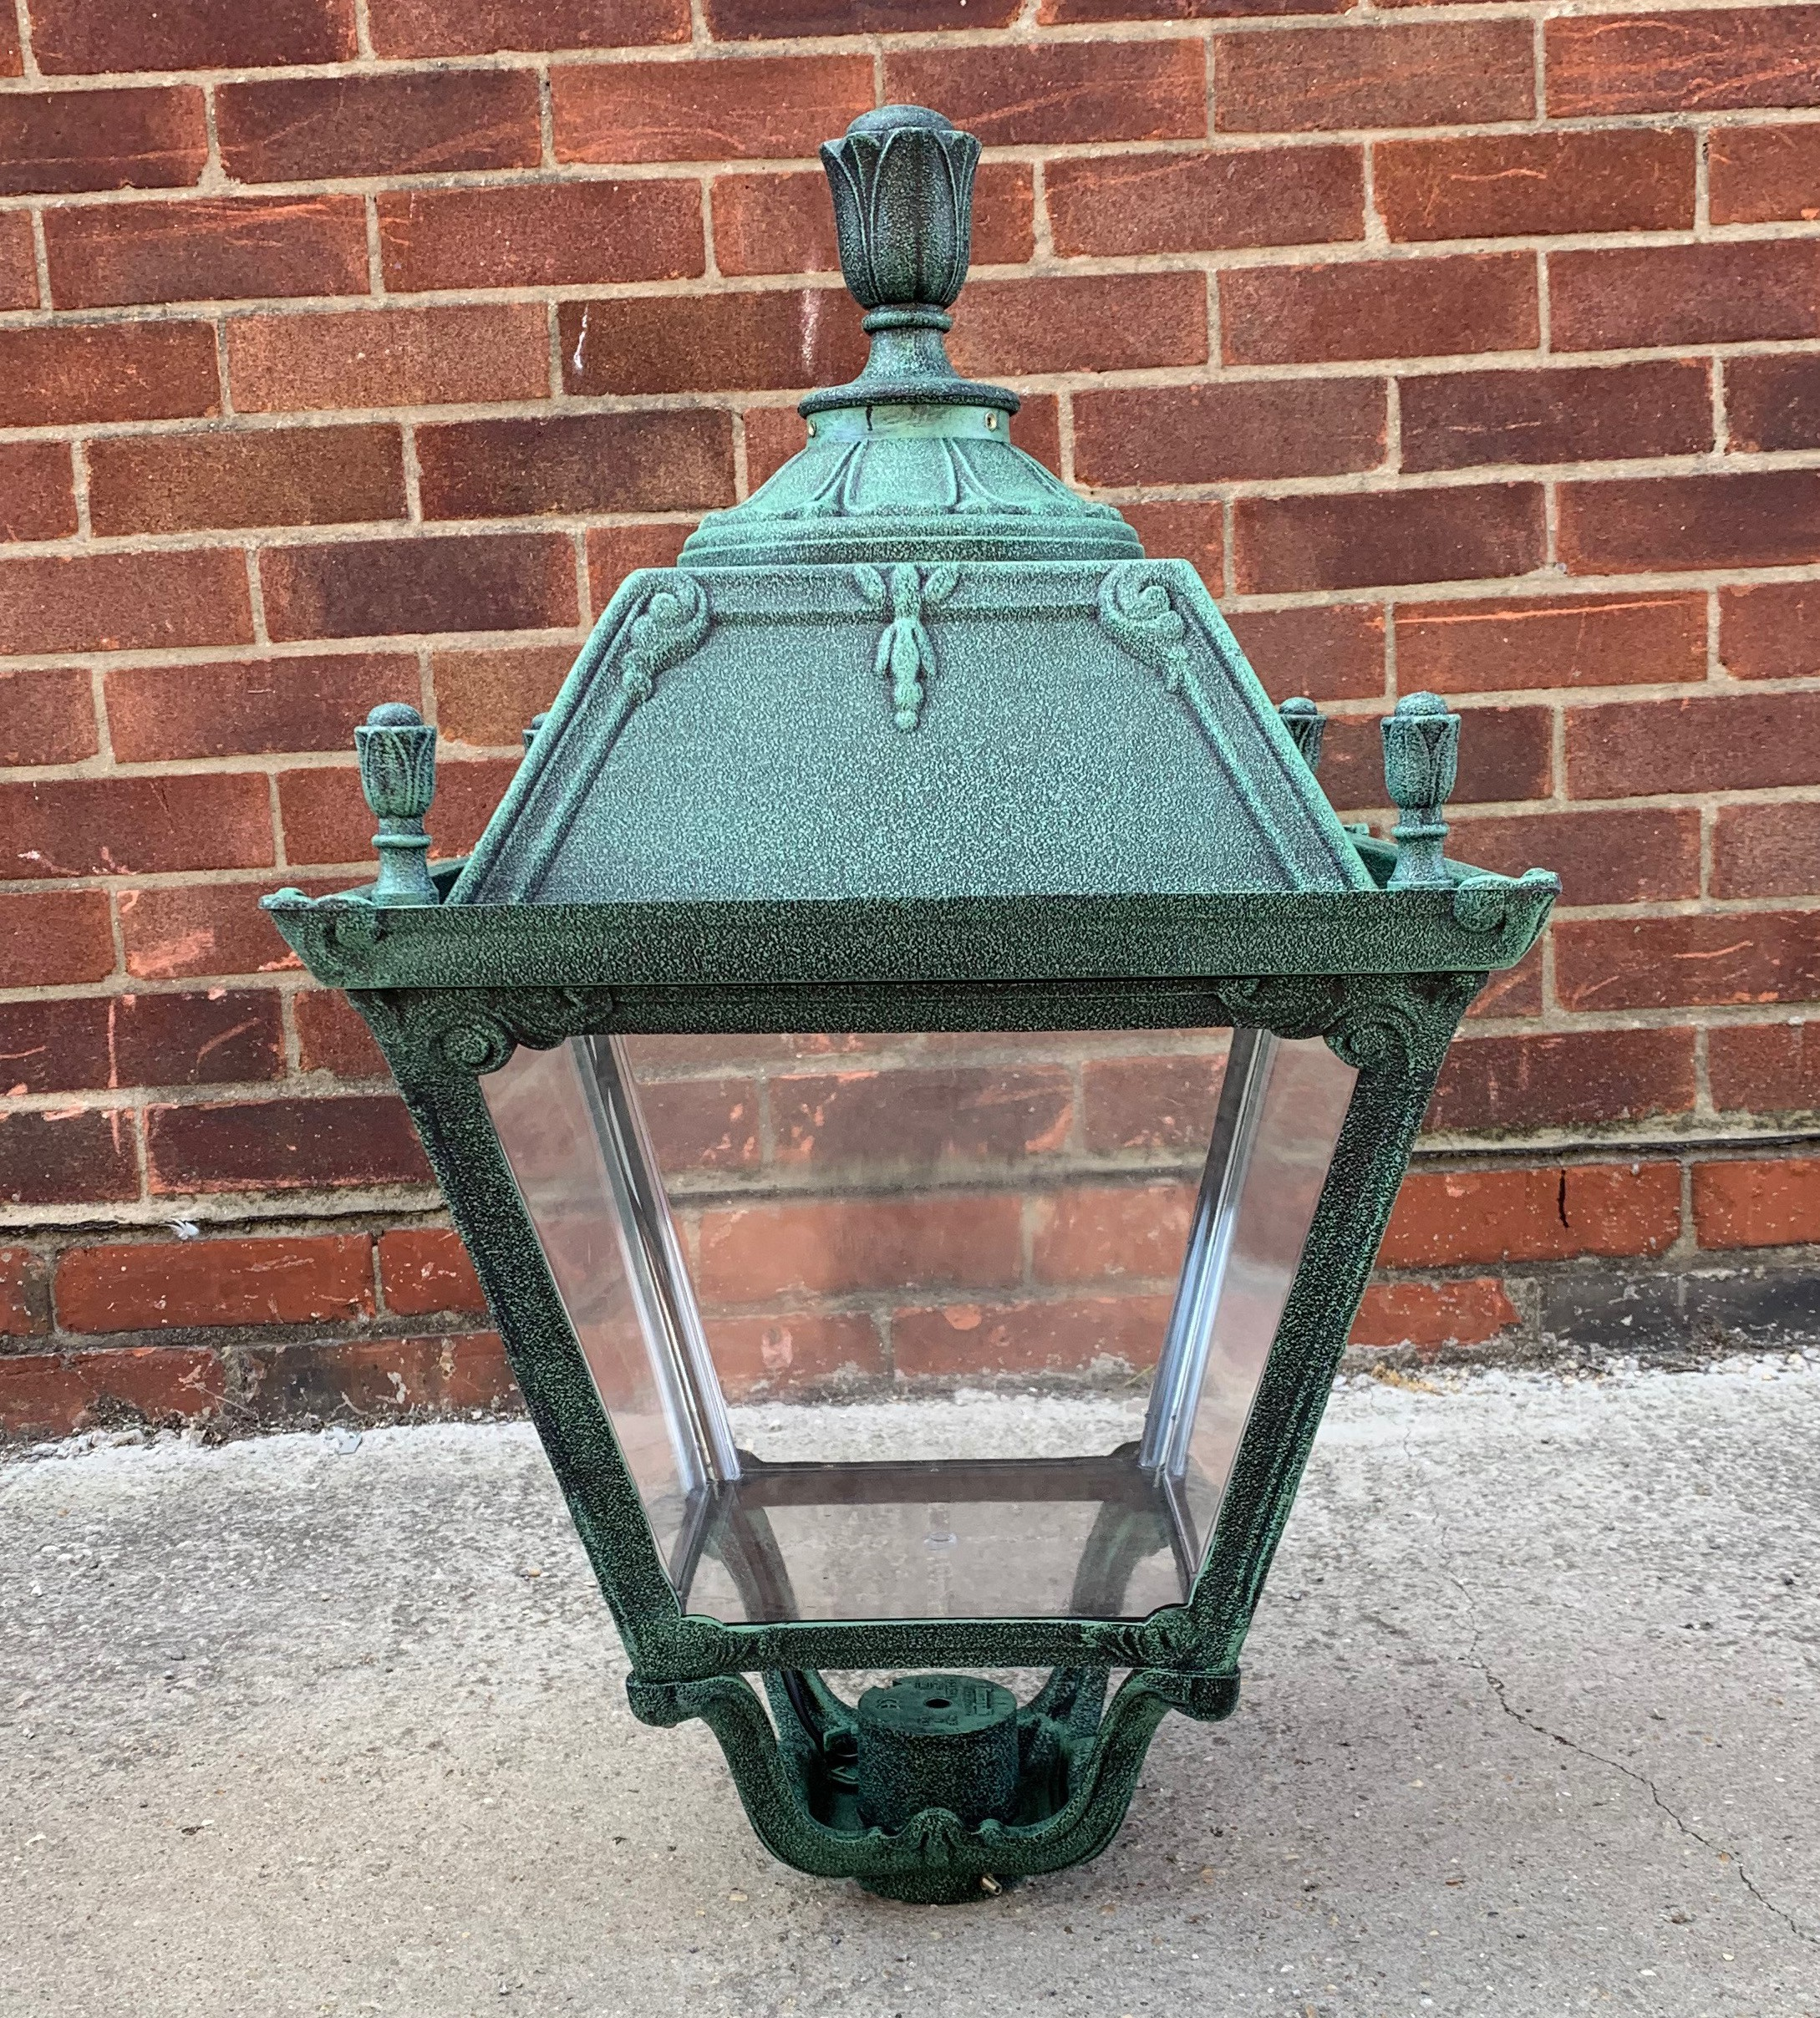 Fumagalli Q43 Large Roma Lantern in Antique Green (Head Only) - Buy online or in store from John Cribb & Sons Ltd